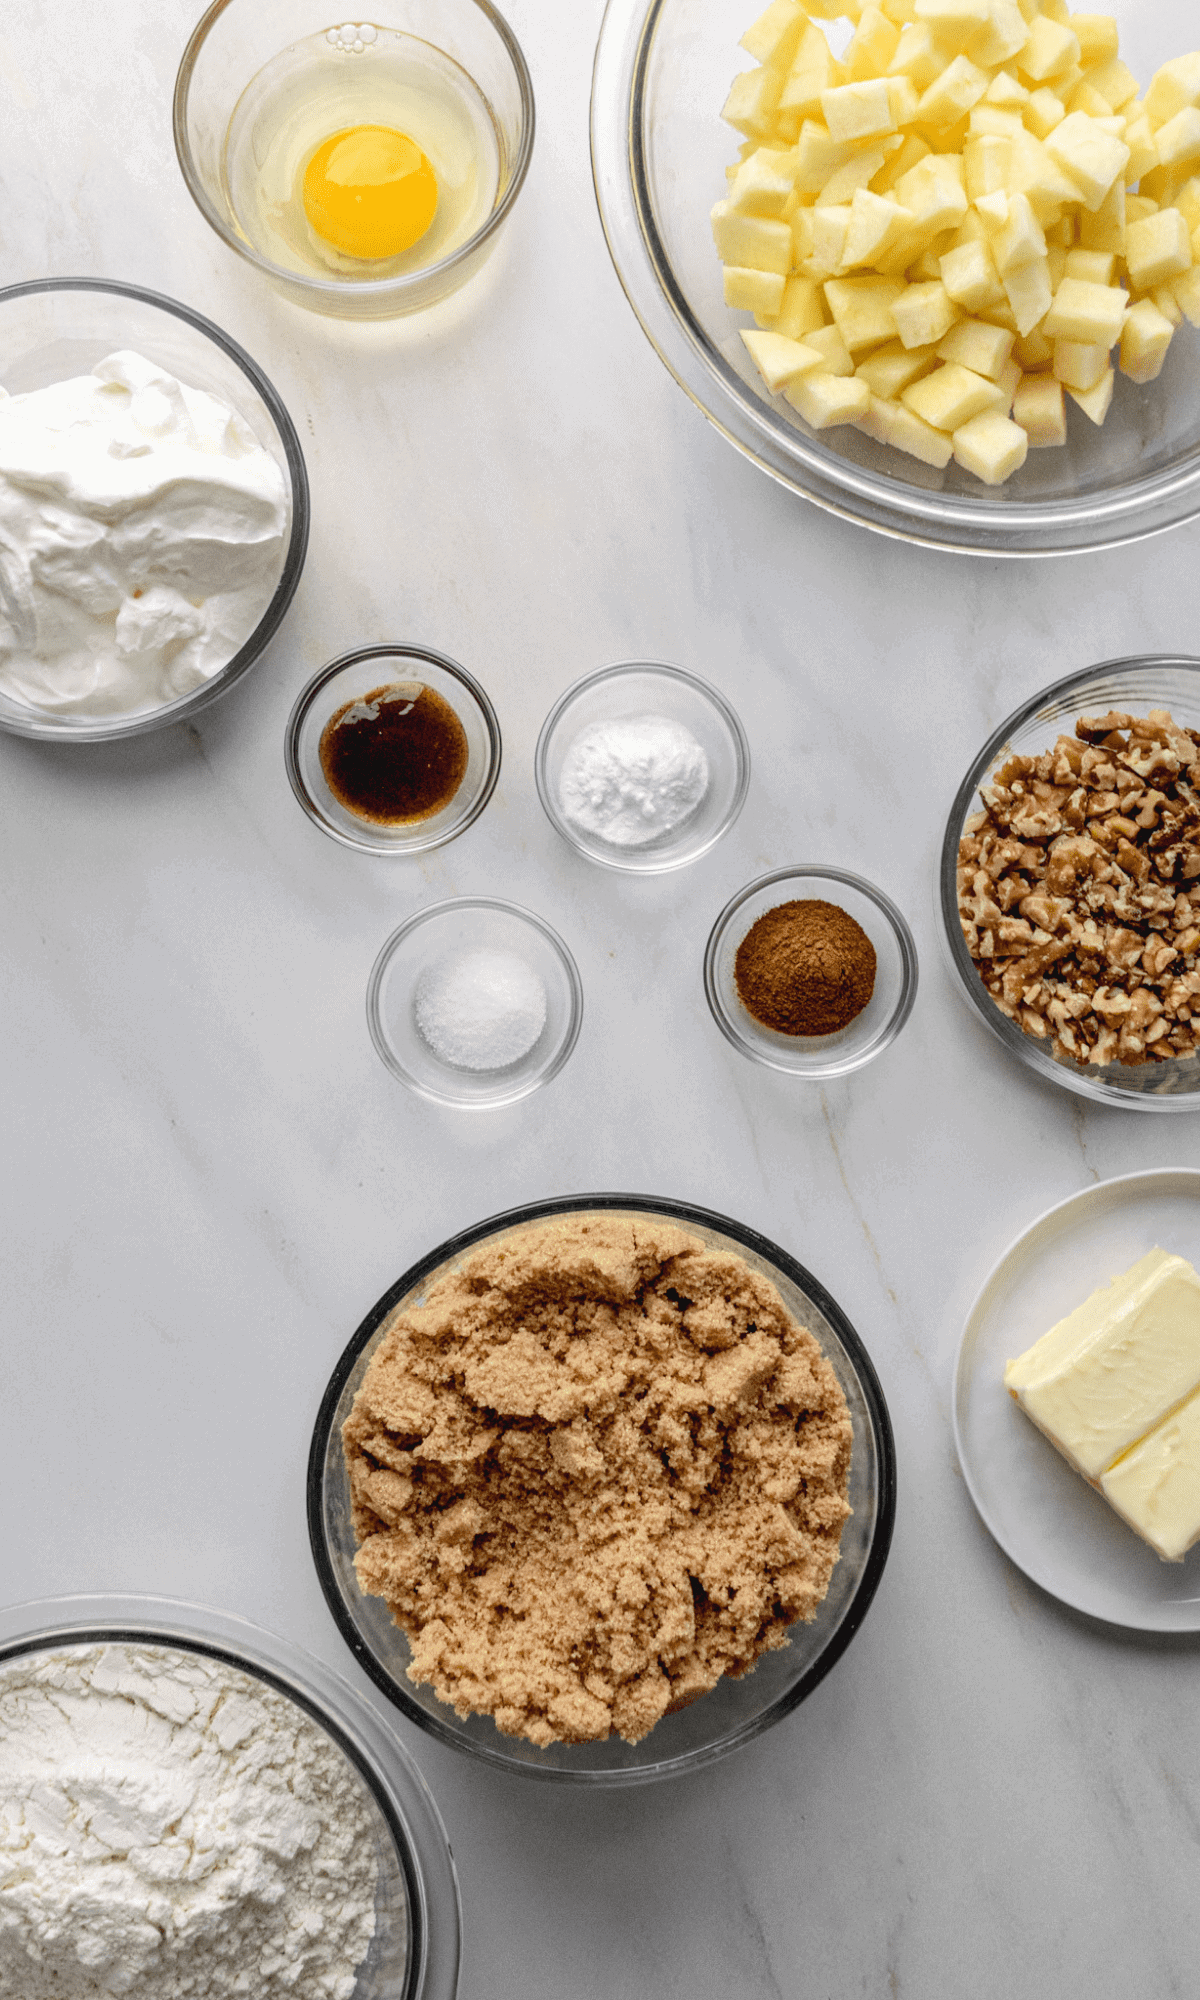 Overhead shot of ingredients for Sour Cream Apple Bars in varying bowl sizes.